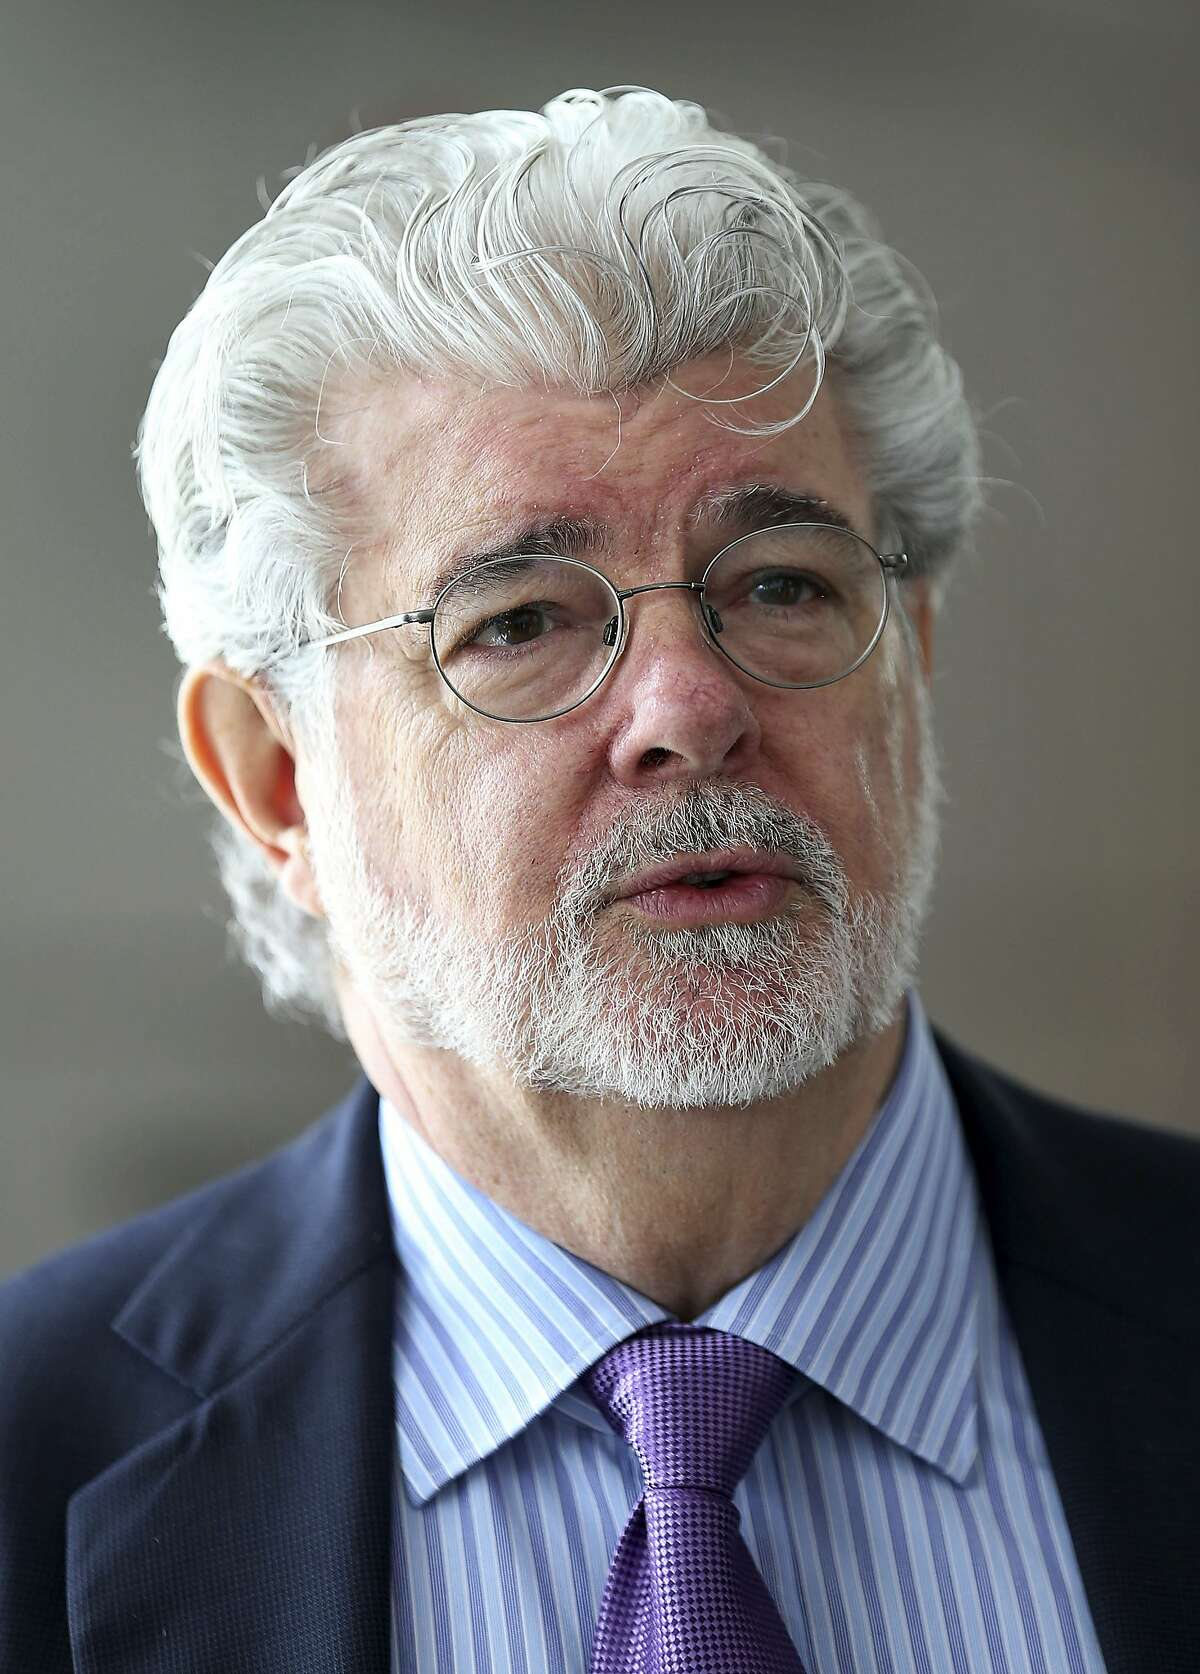 """""""Star Wars"""" creator George Lucas arrives for the opening ceremony of the """"Sandcrawler"""" building, Thursday, Jan. 16, 2014 in Singapore. The """"Sandcrawler"""" building, aptly named due to its resemblance to a large vehicle featured in the original """"Star Wars"""" film, is home to the regional headquarters for Lucasfilm Singapore, The Walt Disney Company (South East Asia) and ESPN Asia Pacific. (AP Photo/Wong Maye-E)"""